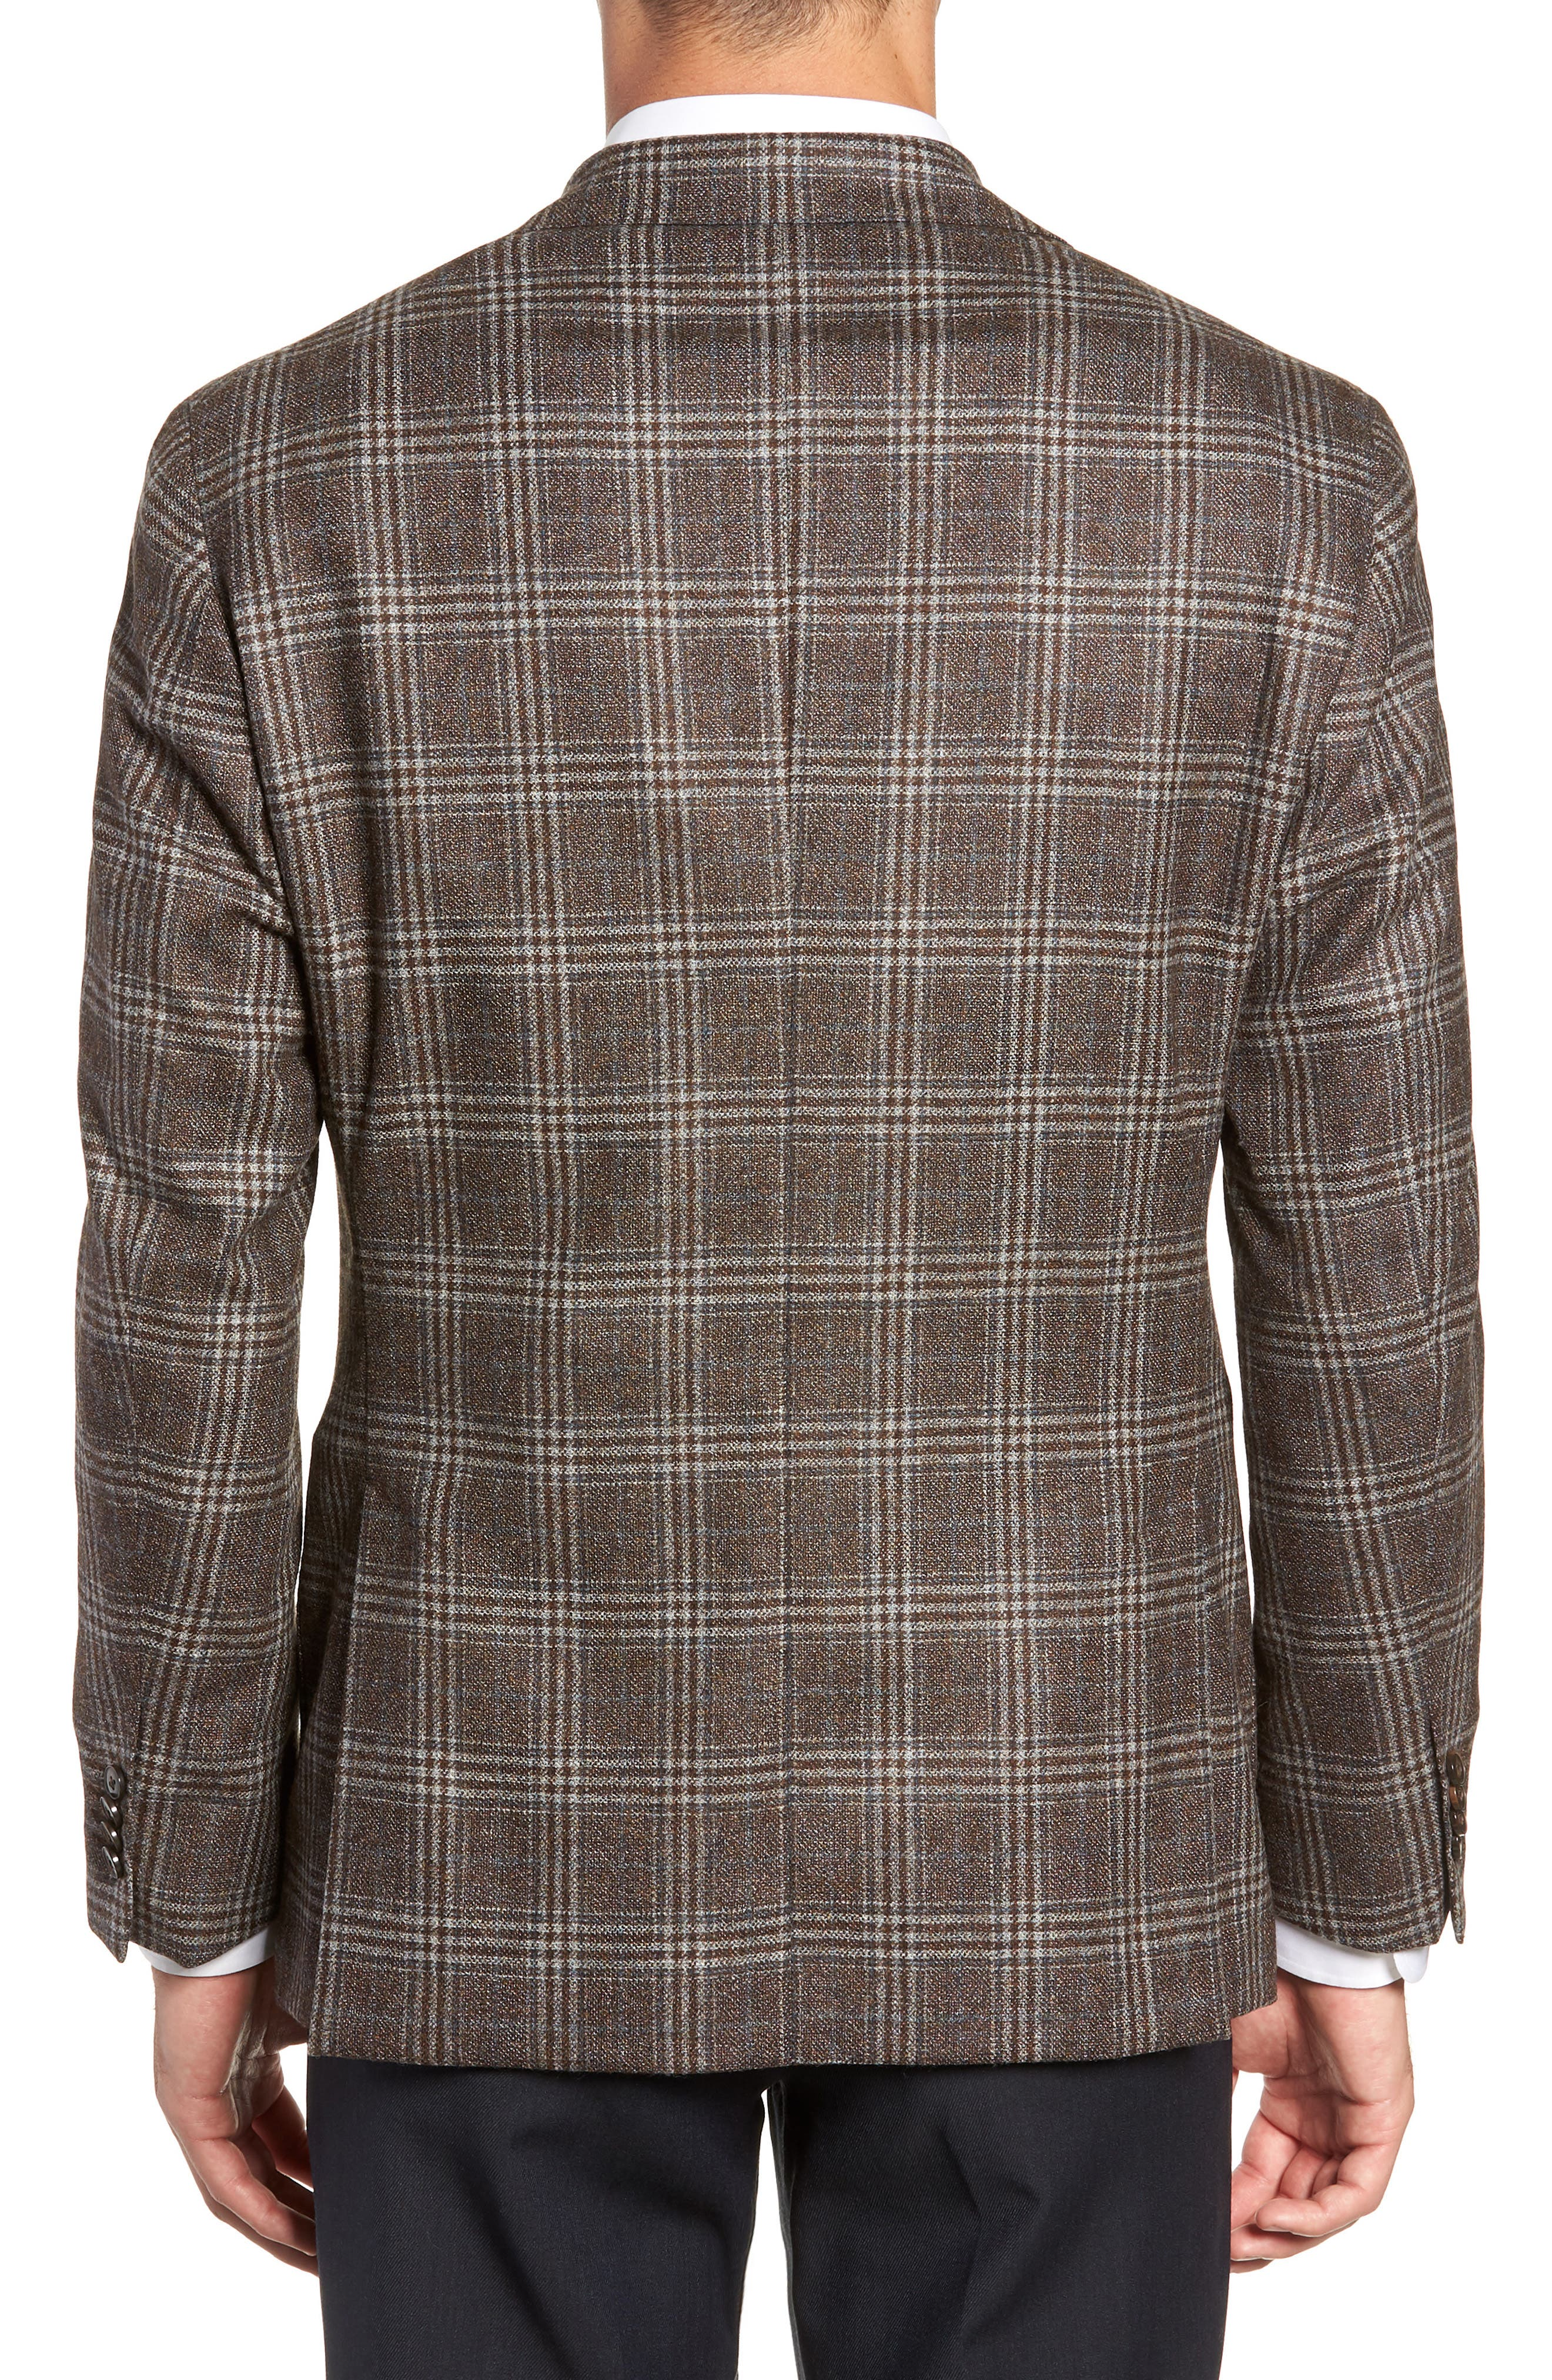 L.B.M 1911 Classic Fit Plaid Wool Sport Coat,                             Alternate thumbnail 2, color,                             BROWN